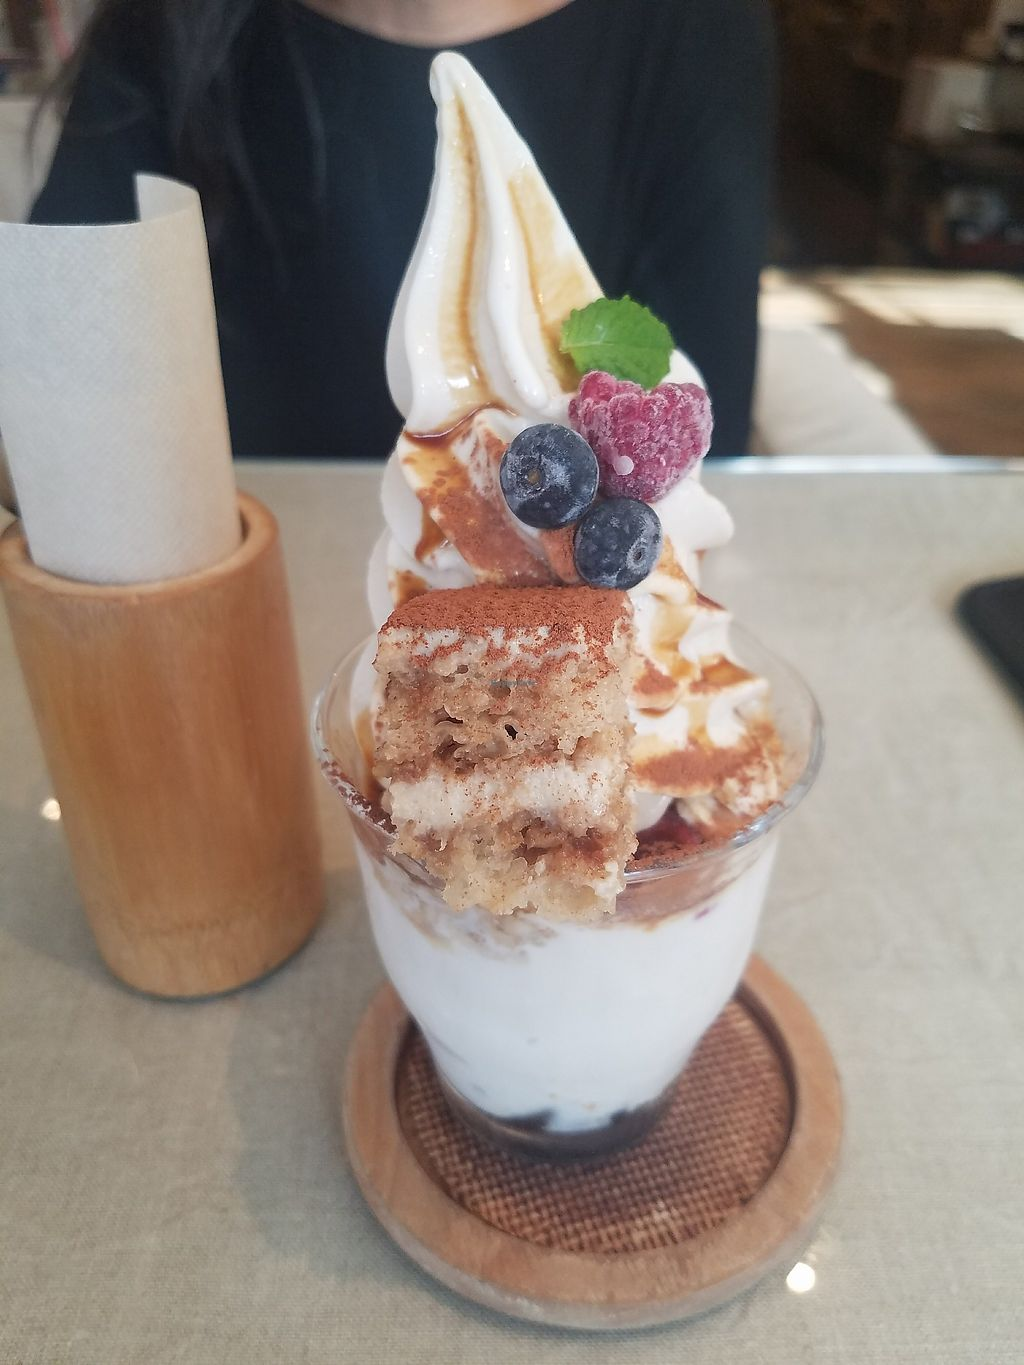 """Photo of Mumokuteki Cafe and Foods  by <a href=""""/members/profile/ReiAmber"""">ReiAmber</a> <br/>tiramisu parfait <br/> May 8, 2018  - <a href='/contact/abuse/image/15812/396996'>Report</a>"""